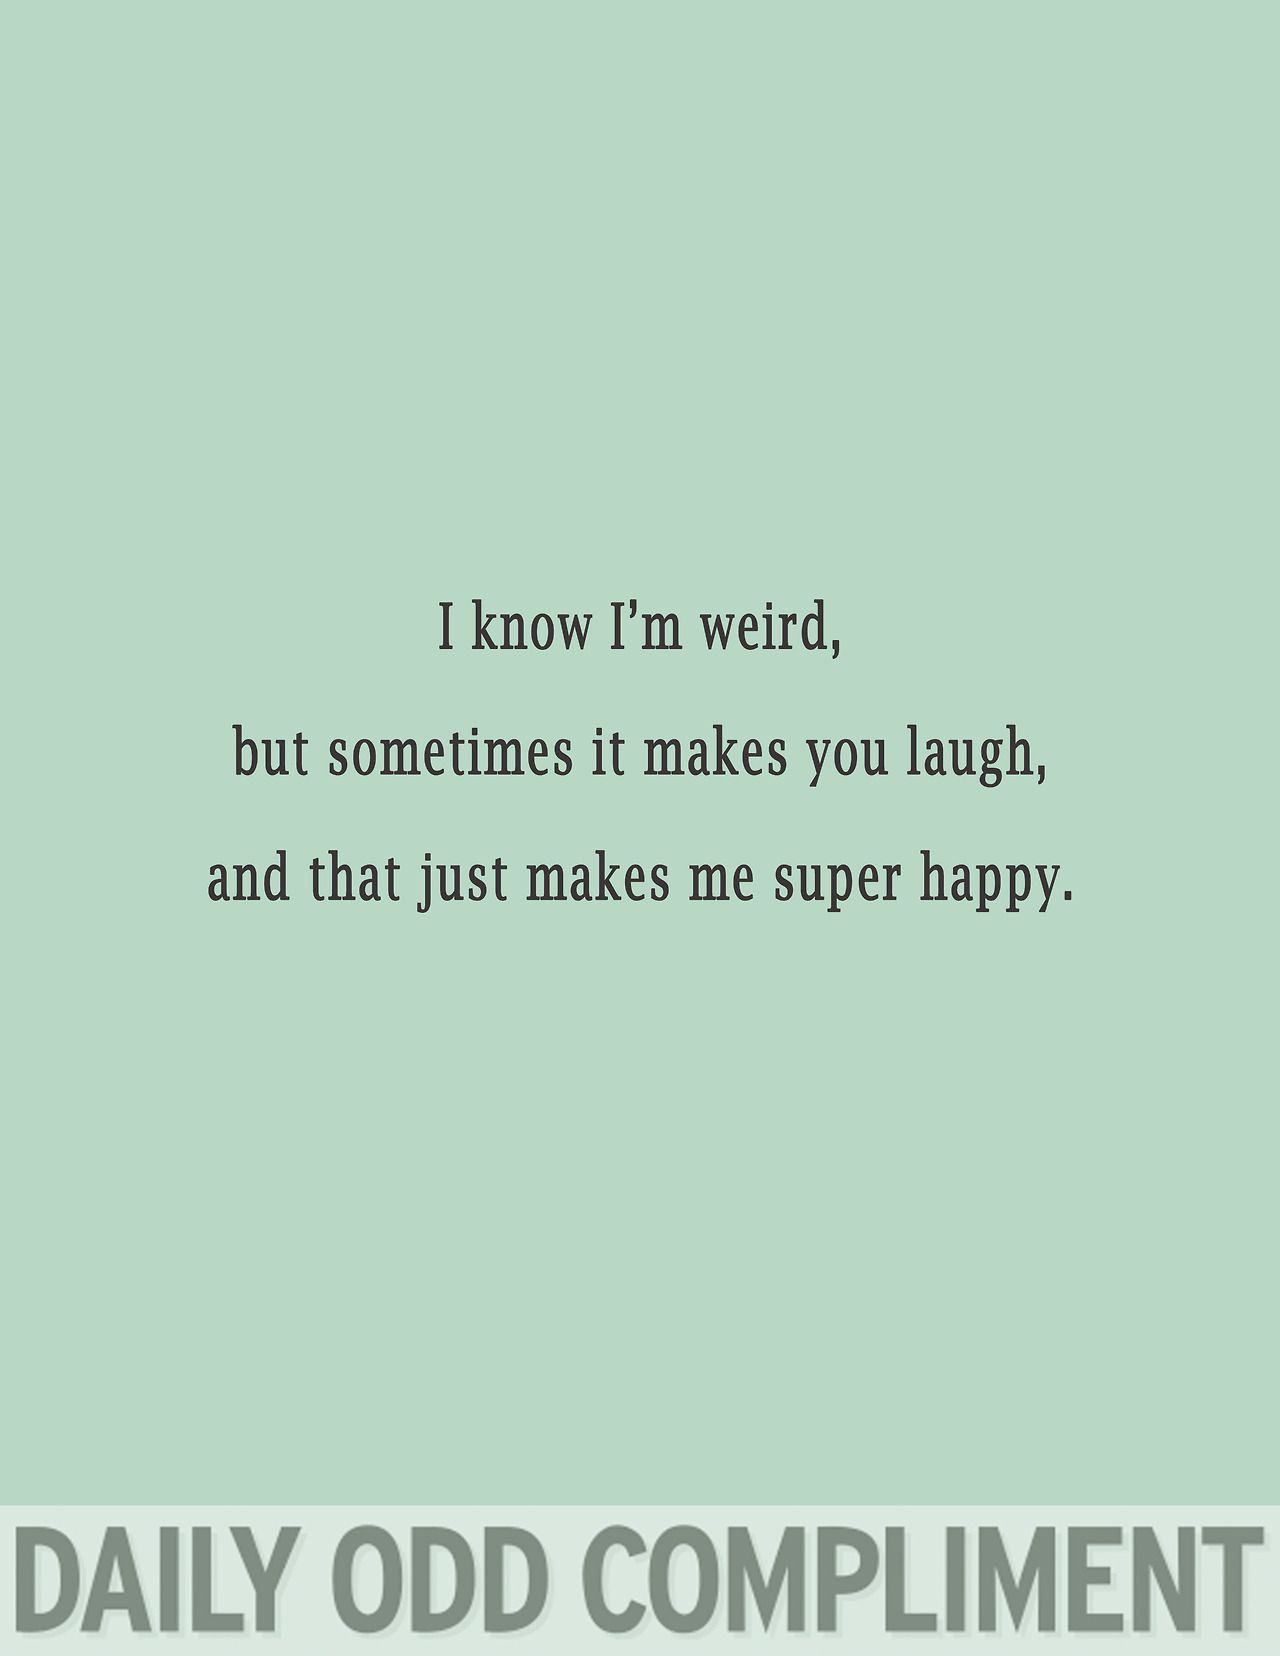 Pin By Celina Marie On Quotes Daily Odd Daily Odd Compliment Odd Compliment